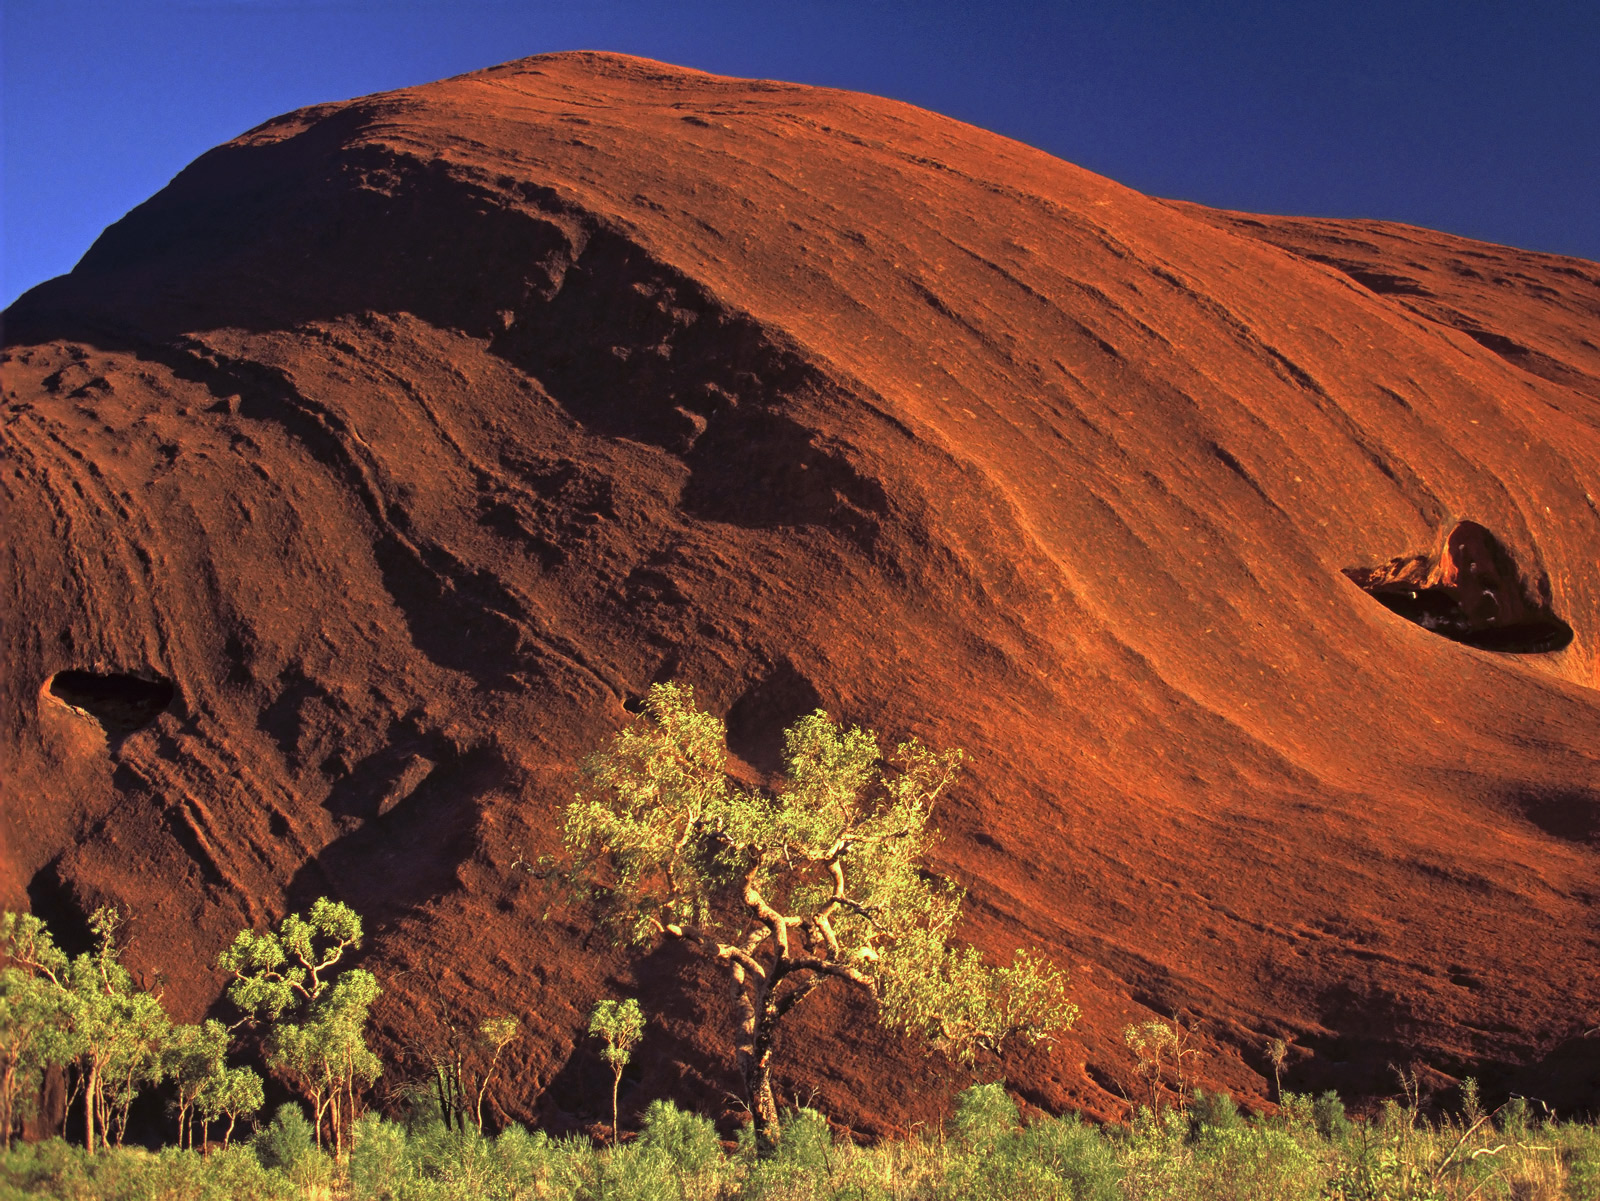 These iron rich rocks of central Australia are extraordinarily red due to the high ferrous content in its mineral structure....